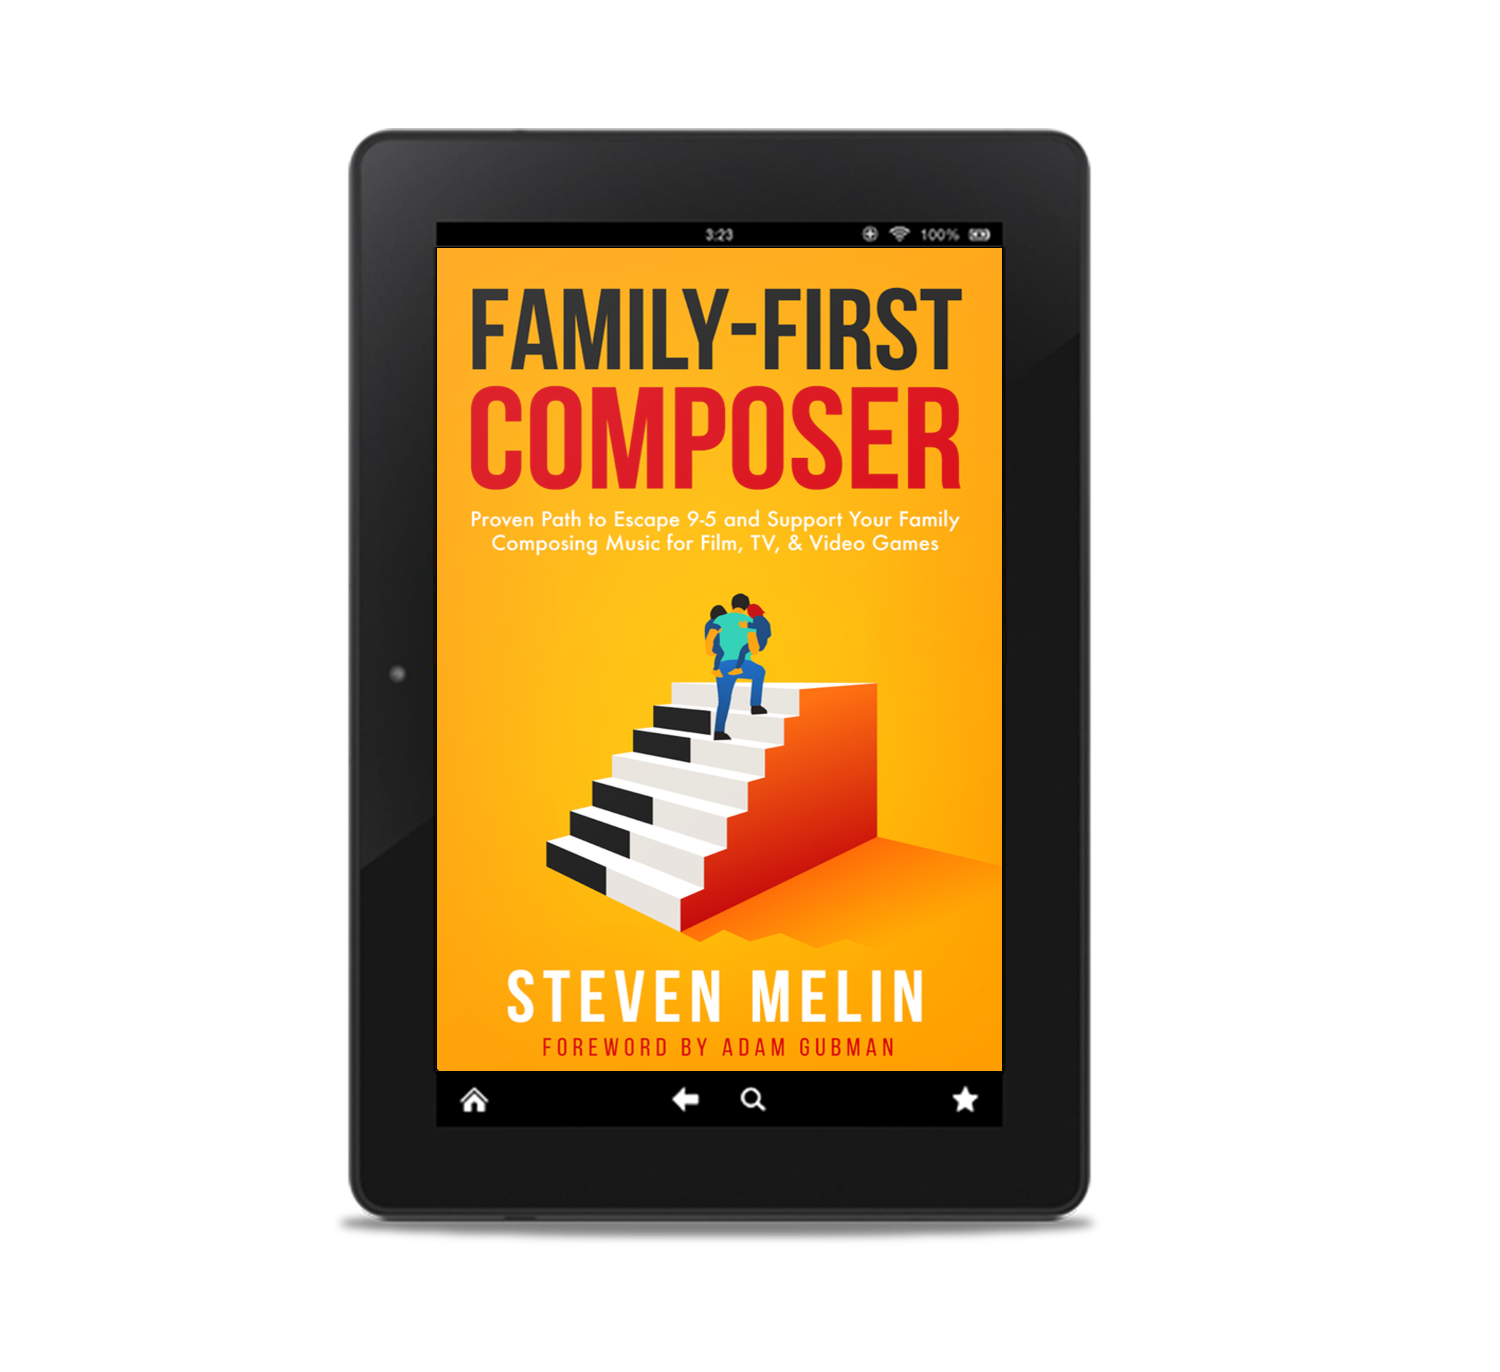 Pre-Order Today! - This book is written for you, a Screen Music Composer seeking to Escape 9–5 and Support your Family Composing Music for Film, TV, & Video Games.Ranked #1 New Release in 3 Amazon Categories, Family-First Composer will guide you to:• Enjoy freedom from your day job• Immediately earn income from your music• Free your time to focus more on your family• Experience fulfillment supporting your family• Do what you love• Work from home• Remove the stress of inconsistent paychecks• Feel secure in your finances• Live peacefully• Open your options for a better lifestyle• Embrace autonomy in your life to do what you want, when you want, where you want, with whom you want, at the price you want, & at the terms you want!